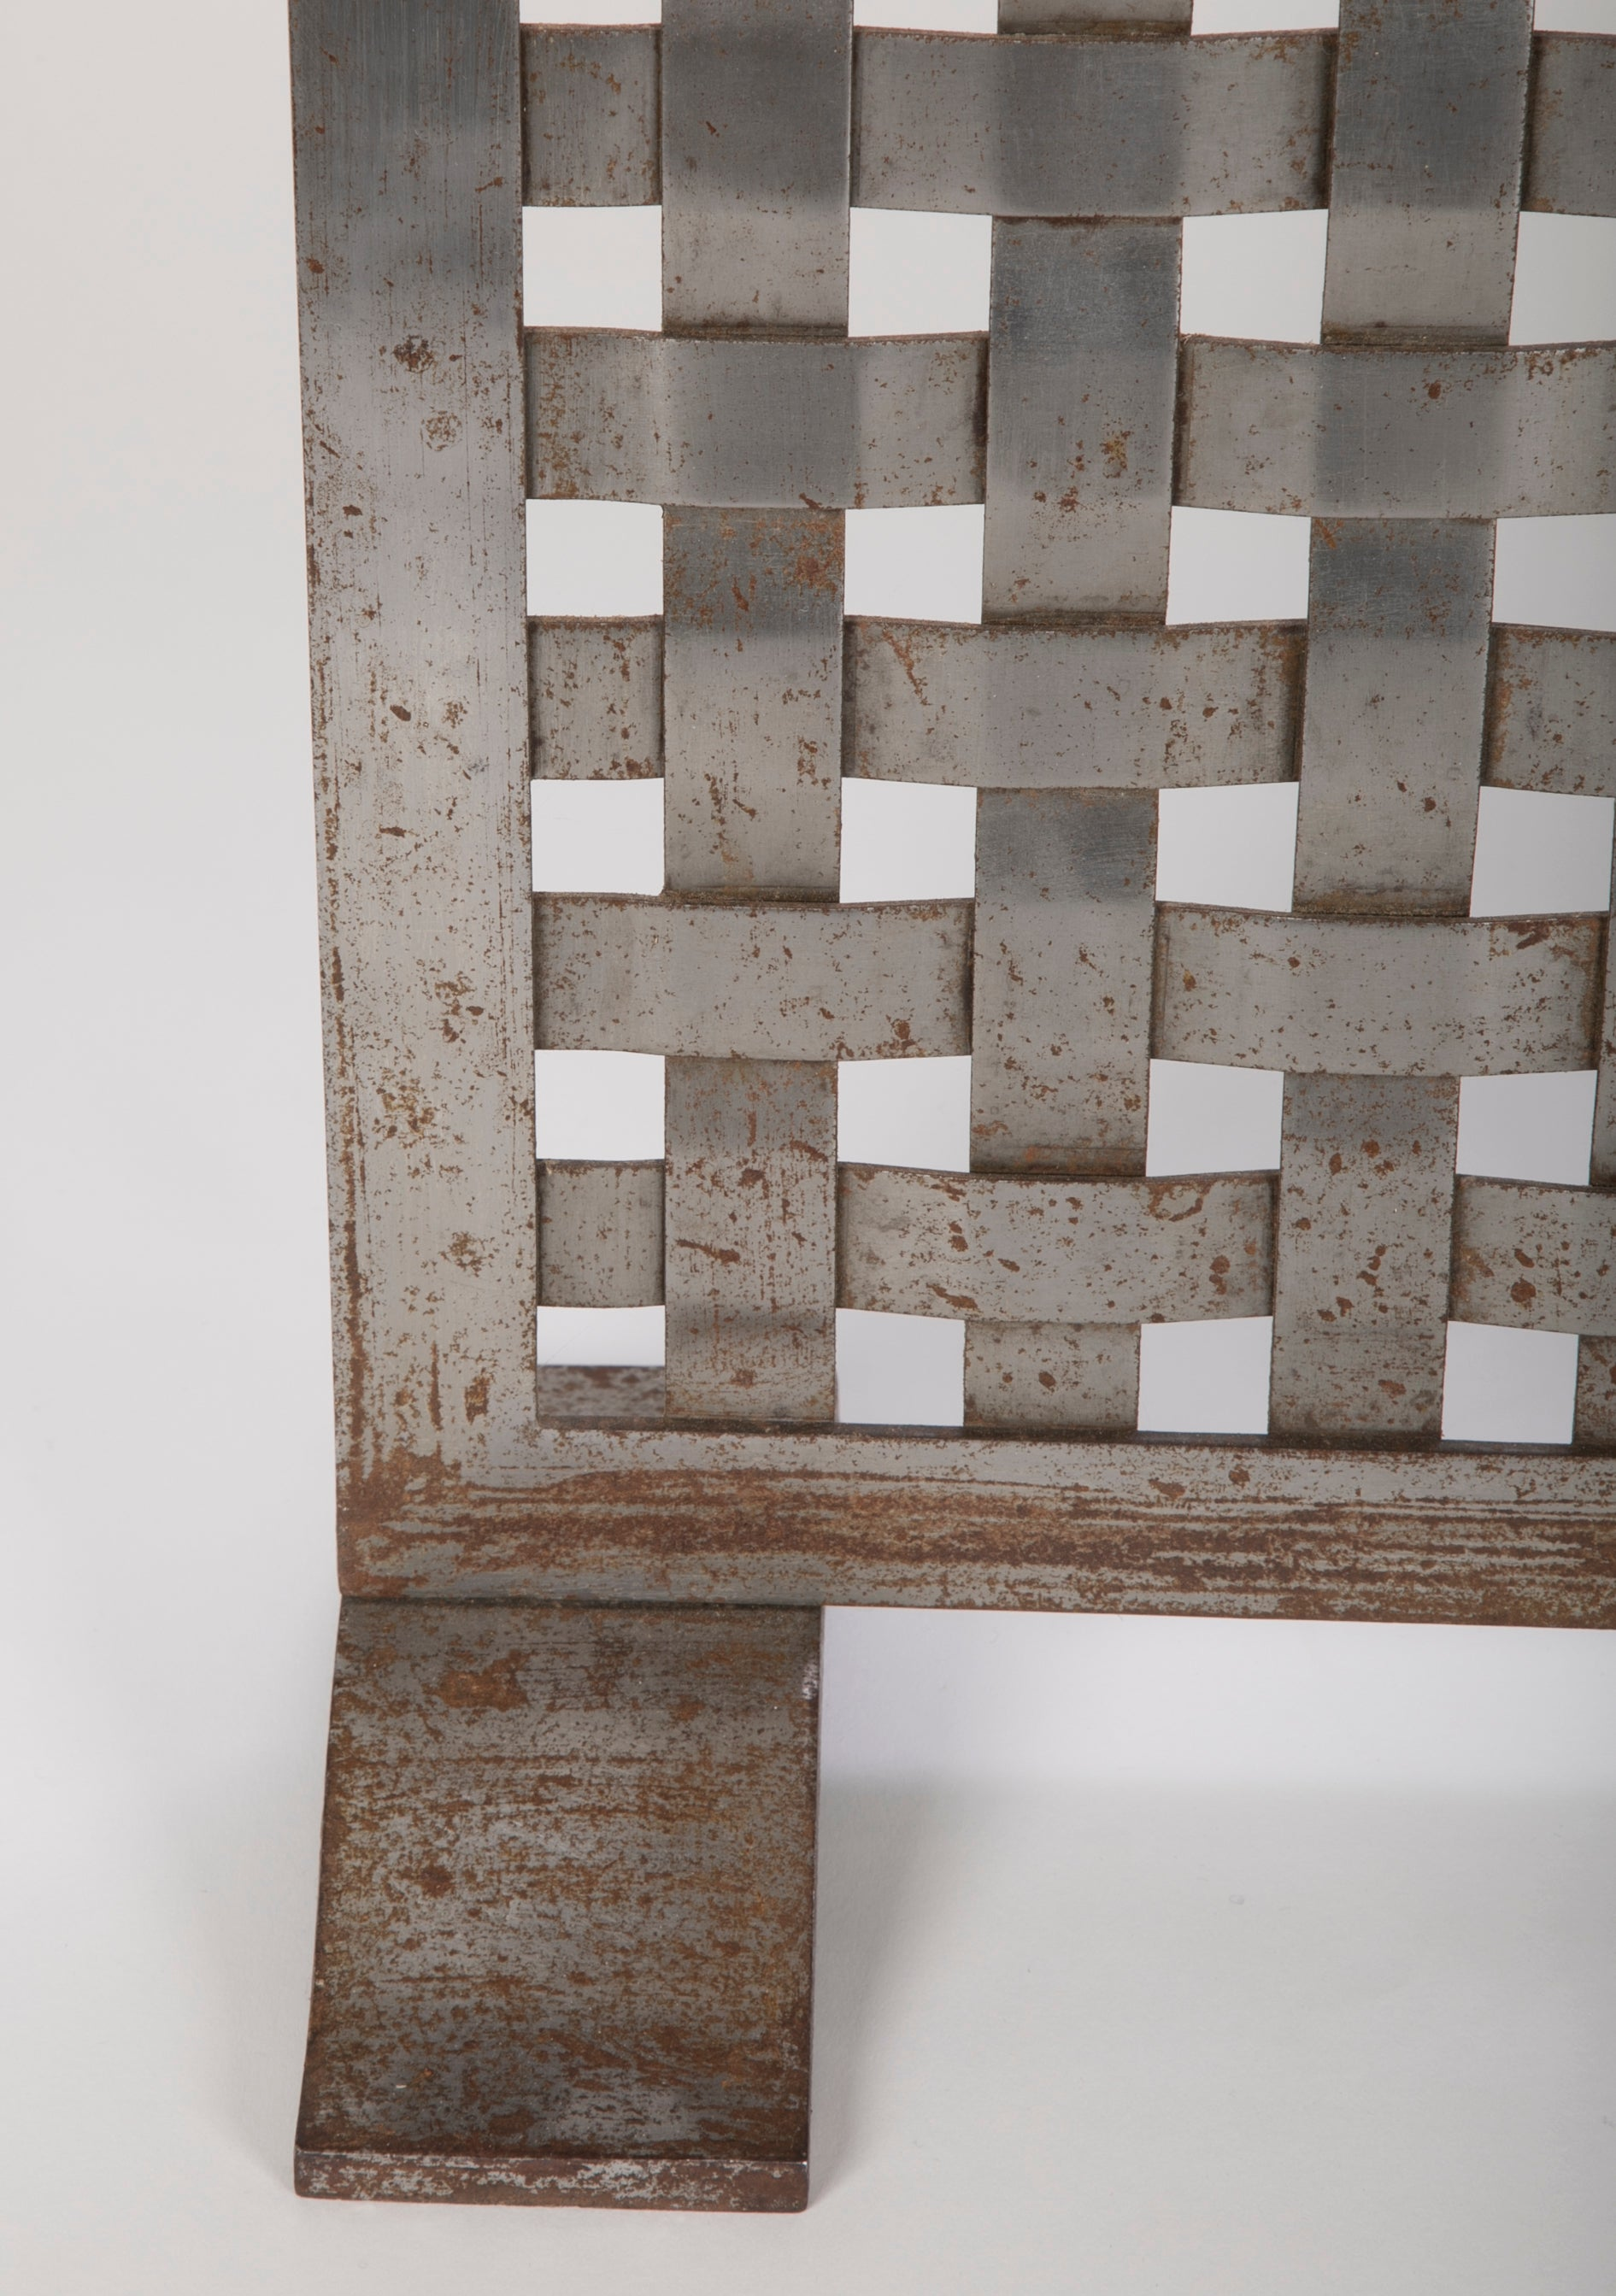 A Woven Steel Arts and Crafts Fire Screen